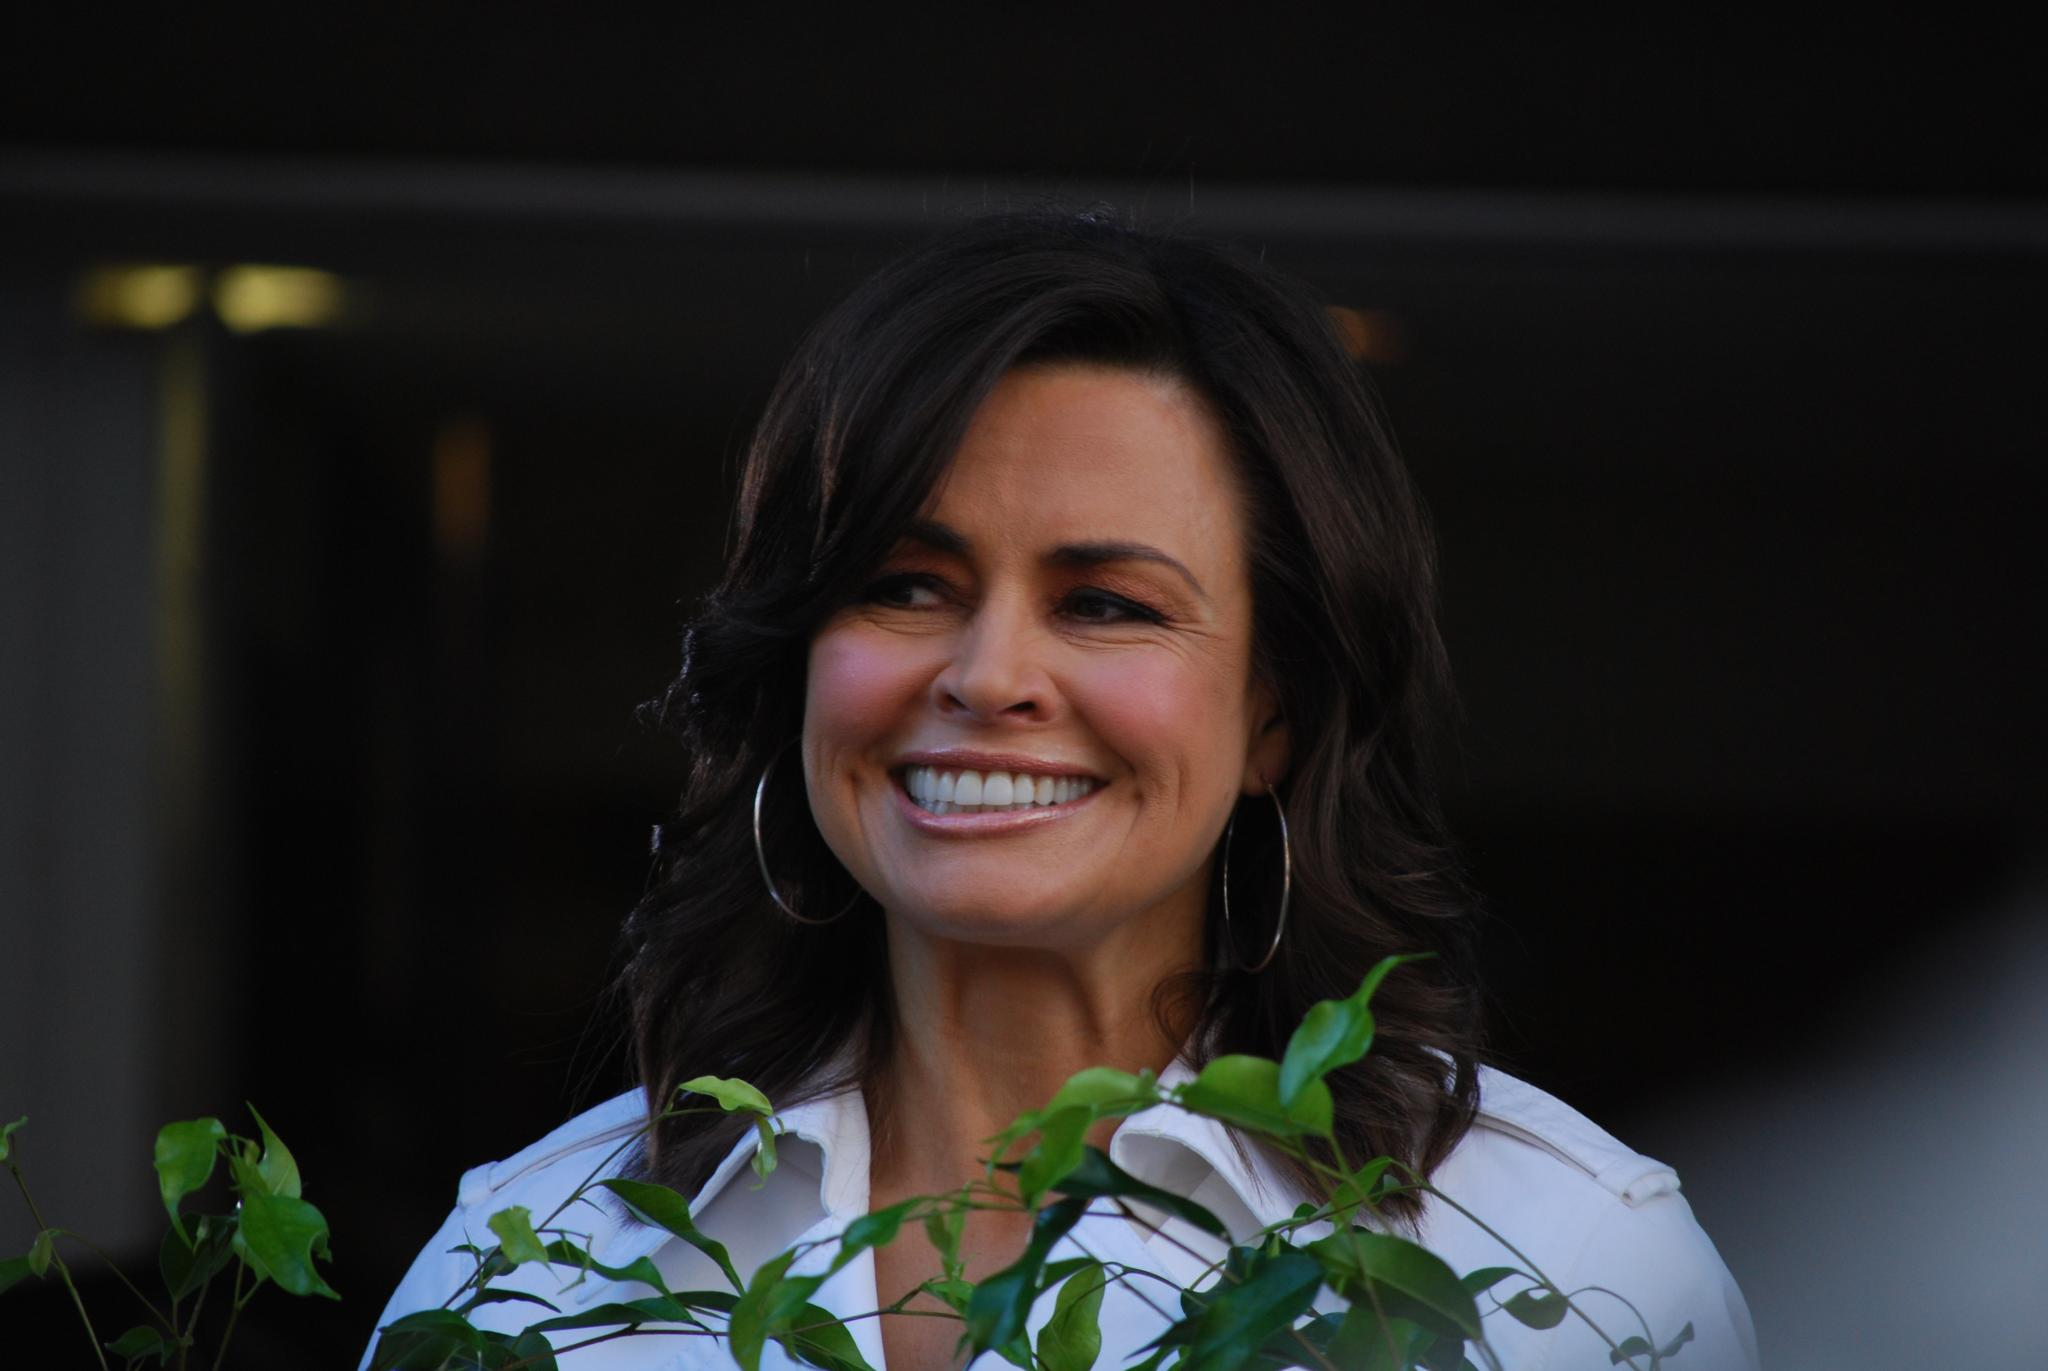 File:Glance - Lisa Wilkinson - Ch9 Today Show, Bourke ...